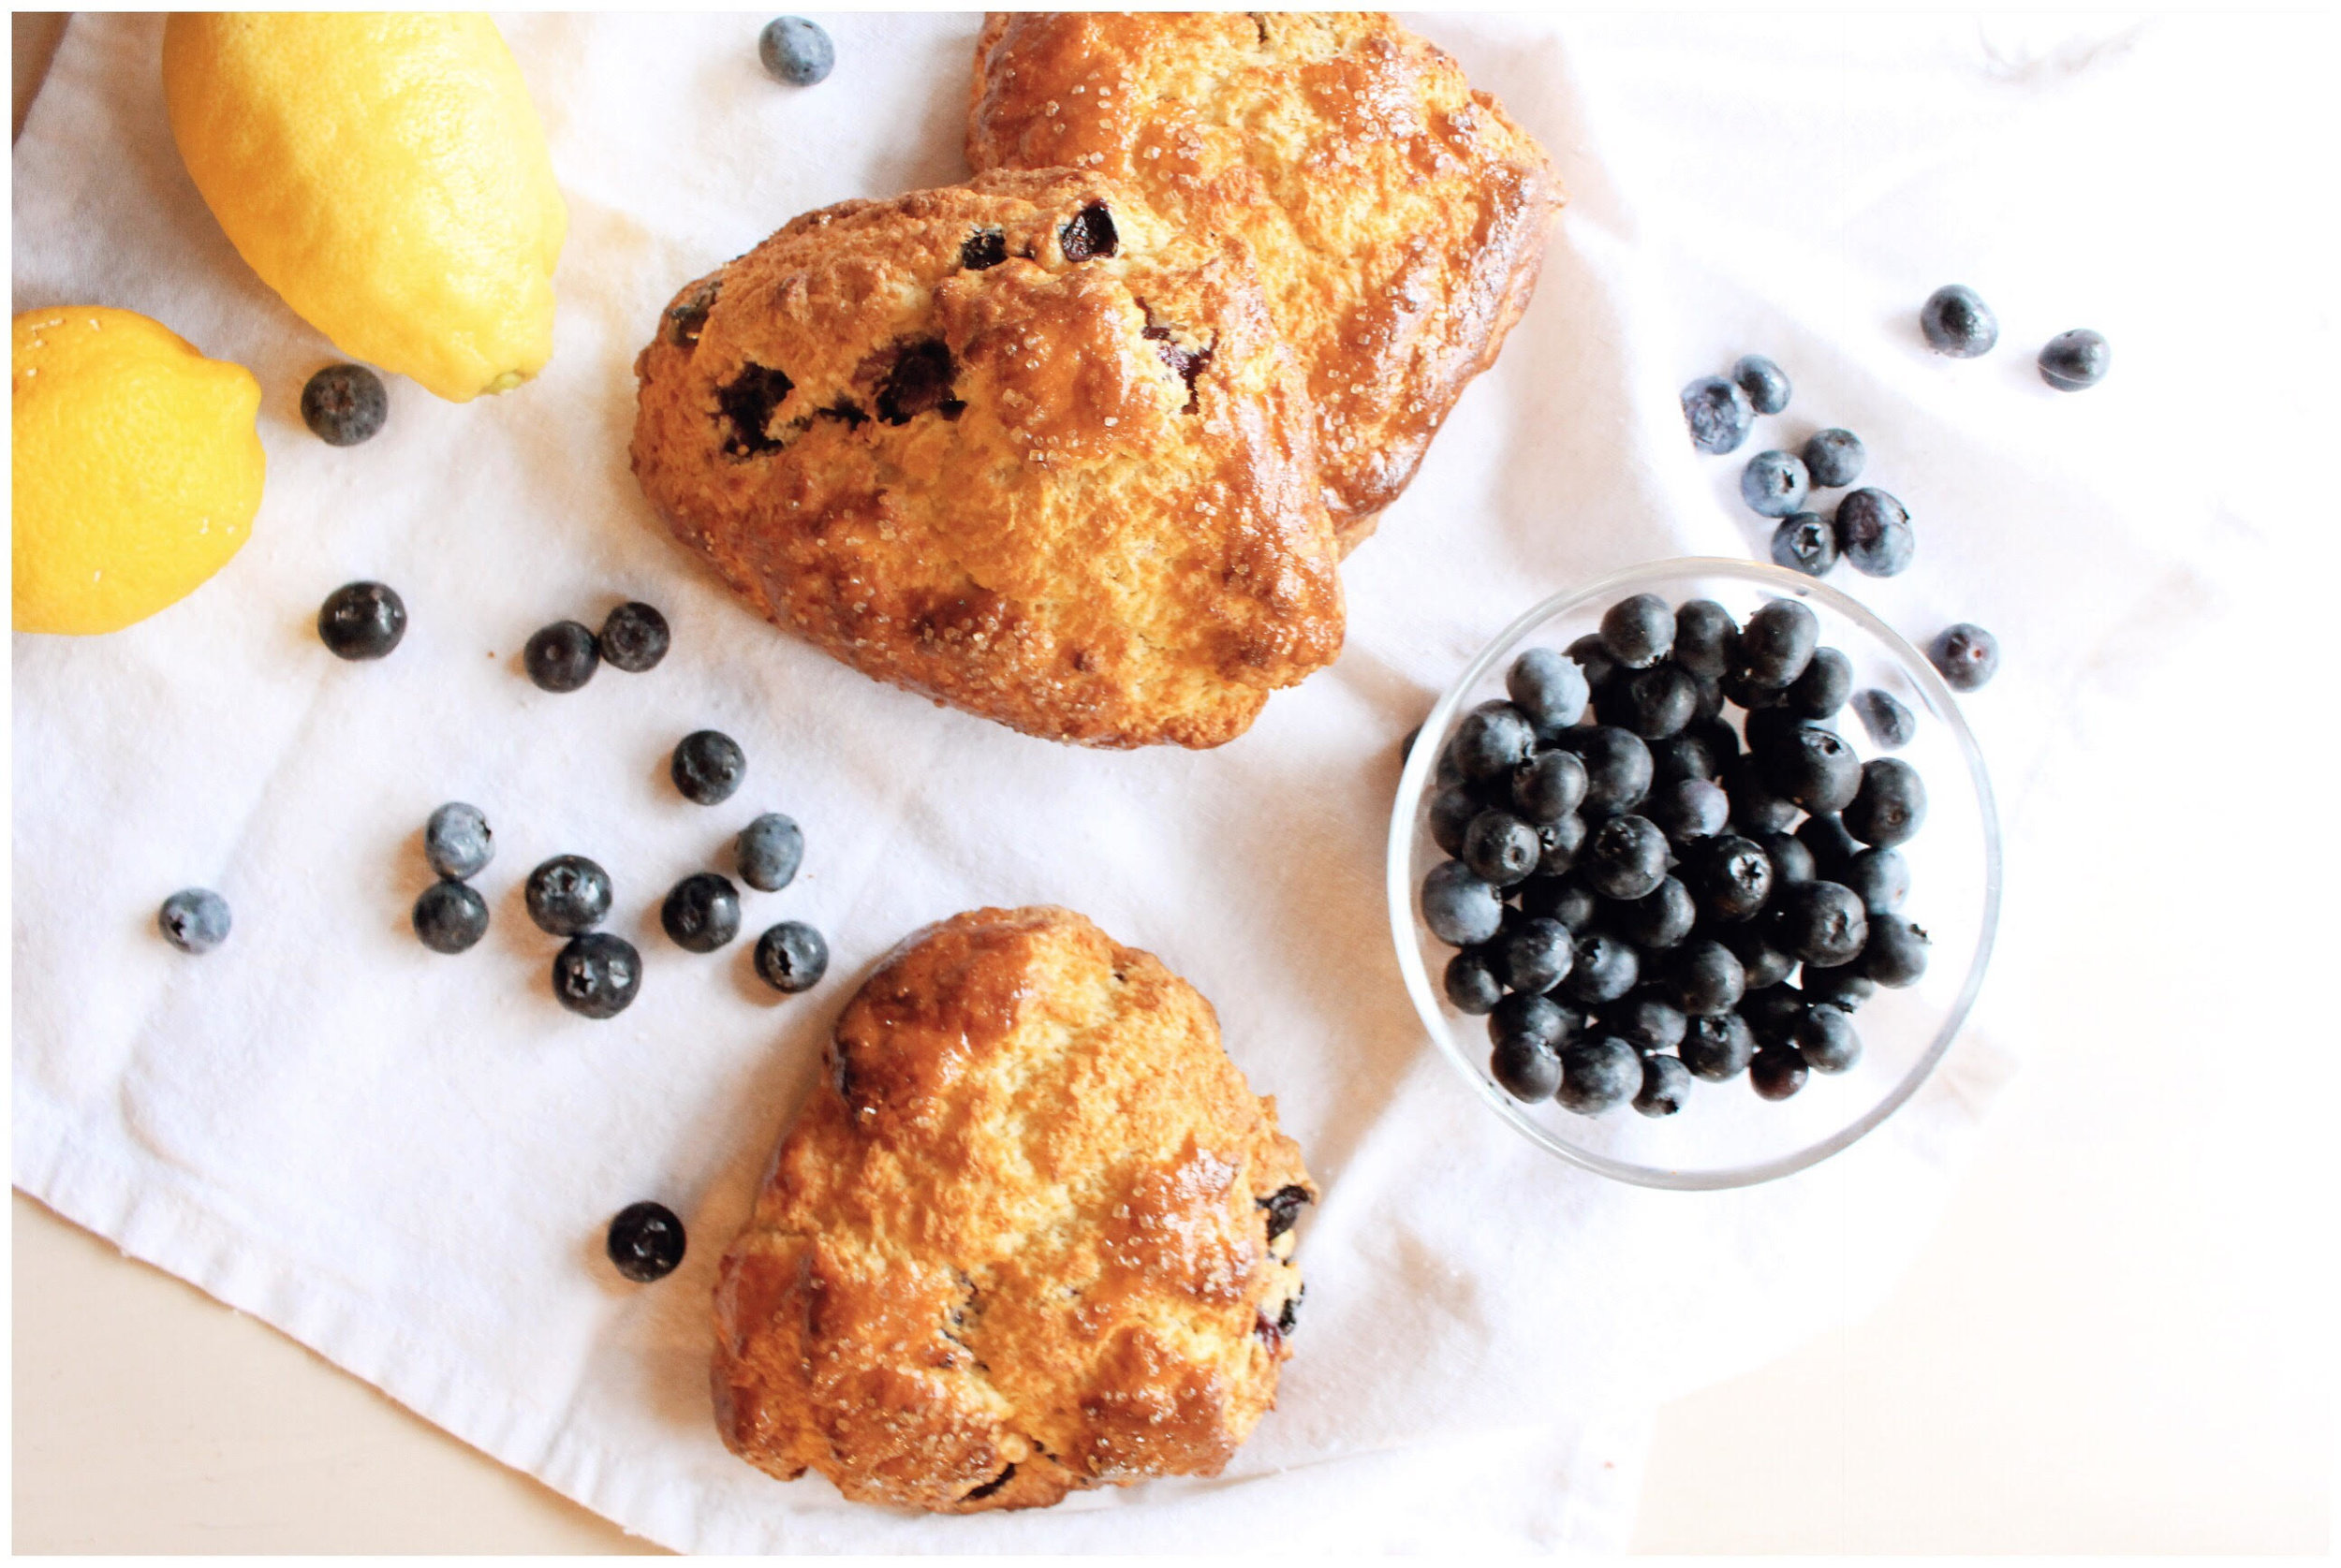 blueberry scone2.JPG